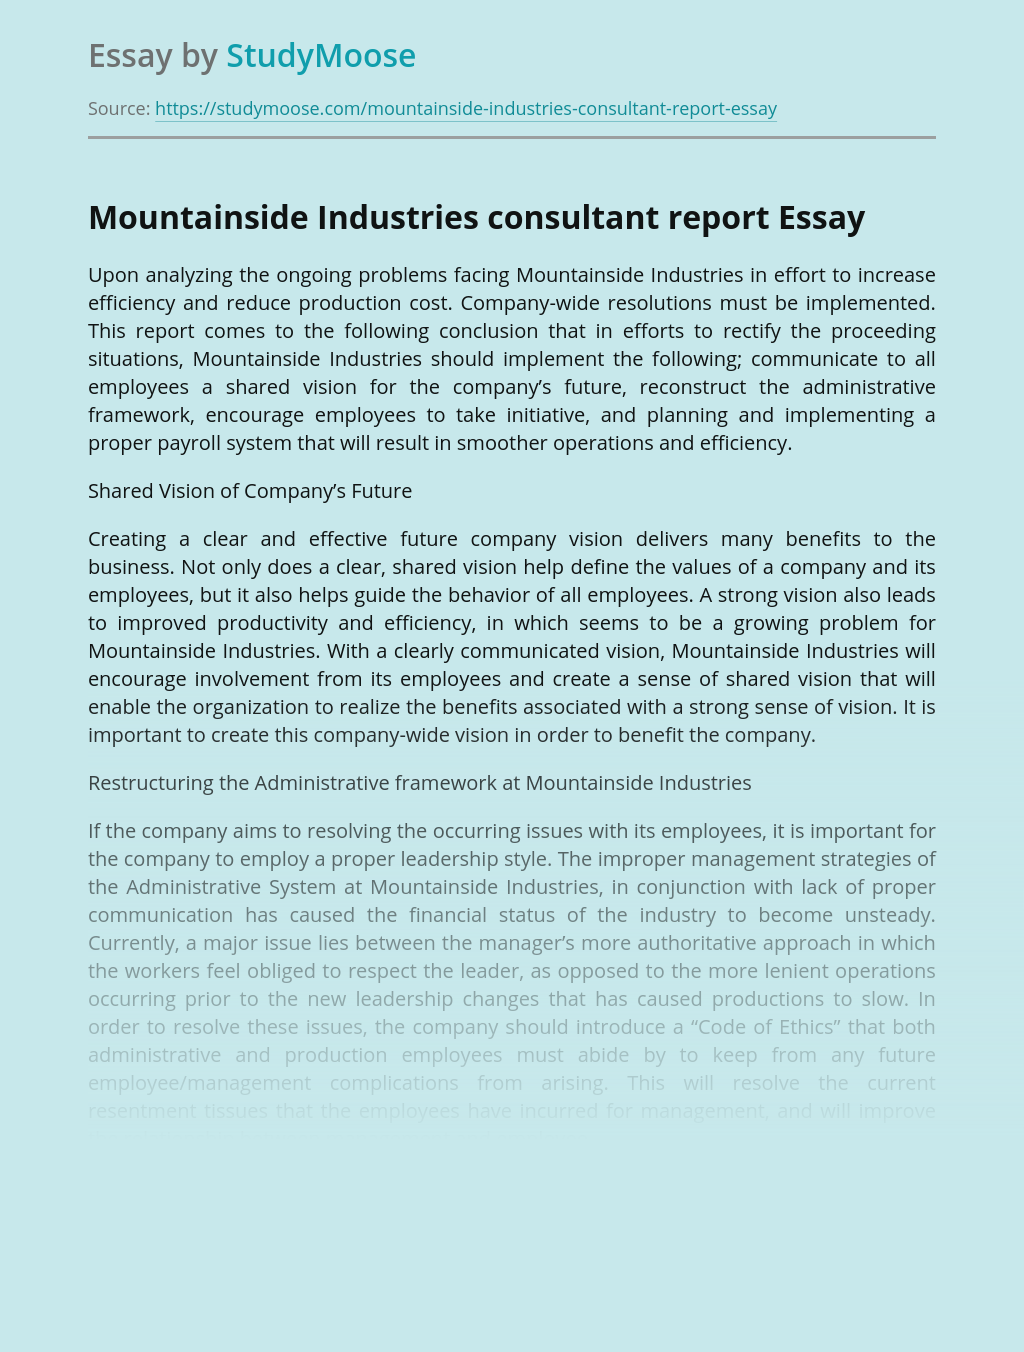 Mountainside Industries consultant report